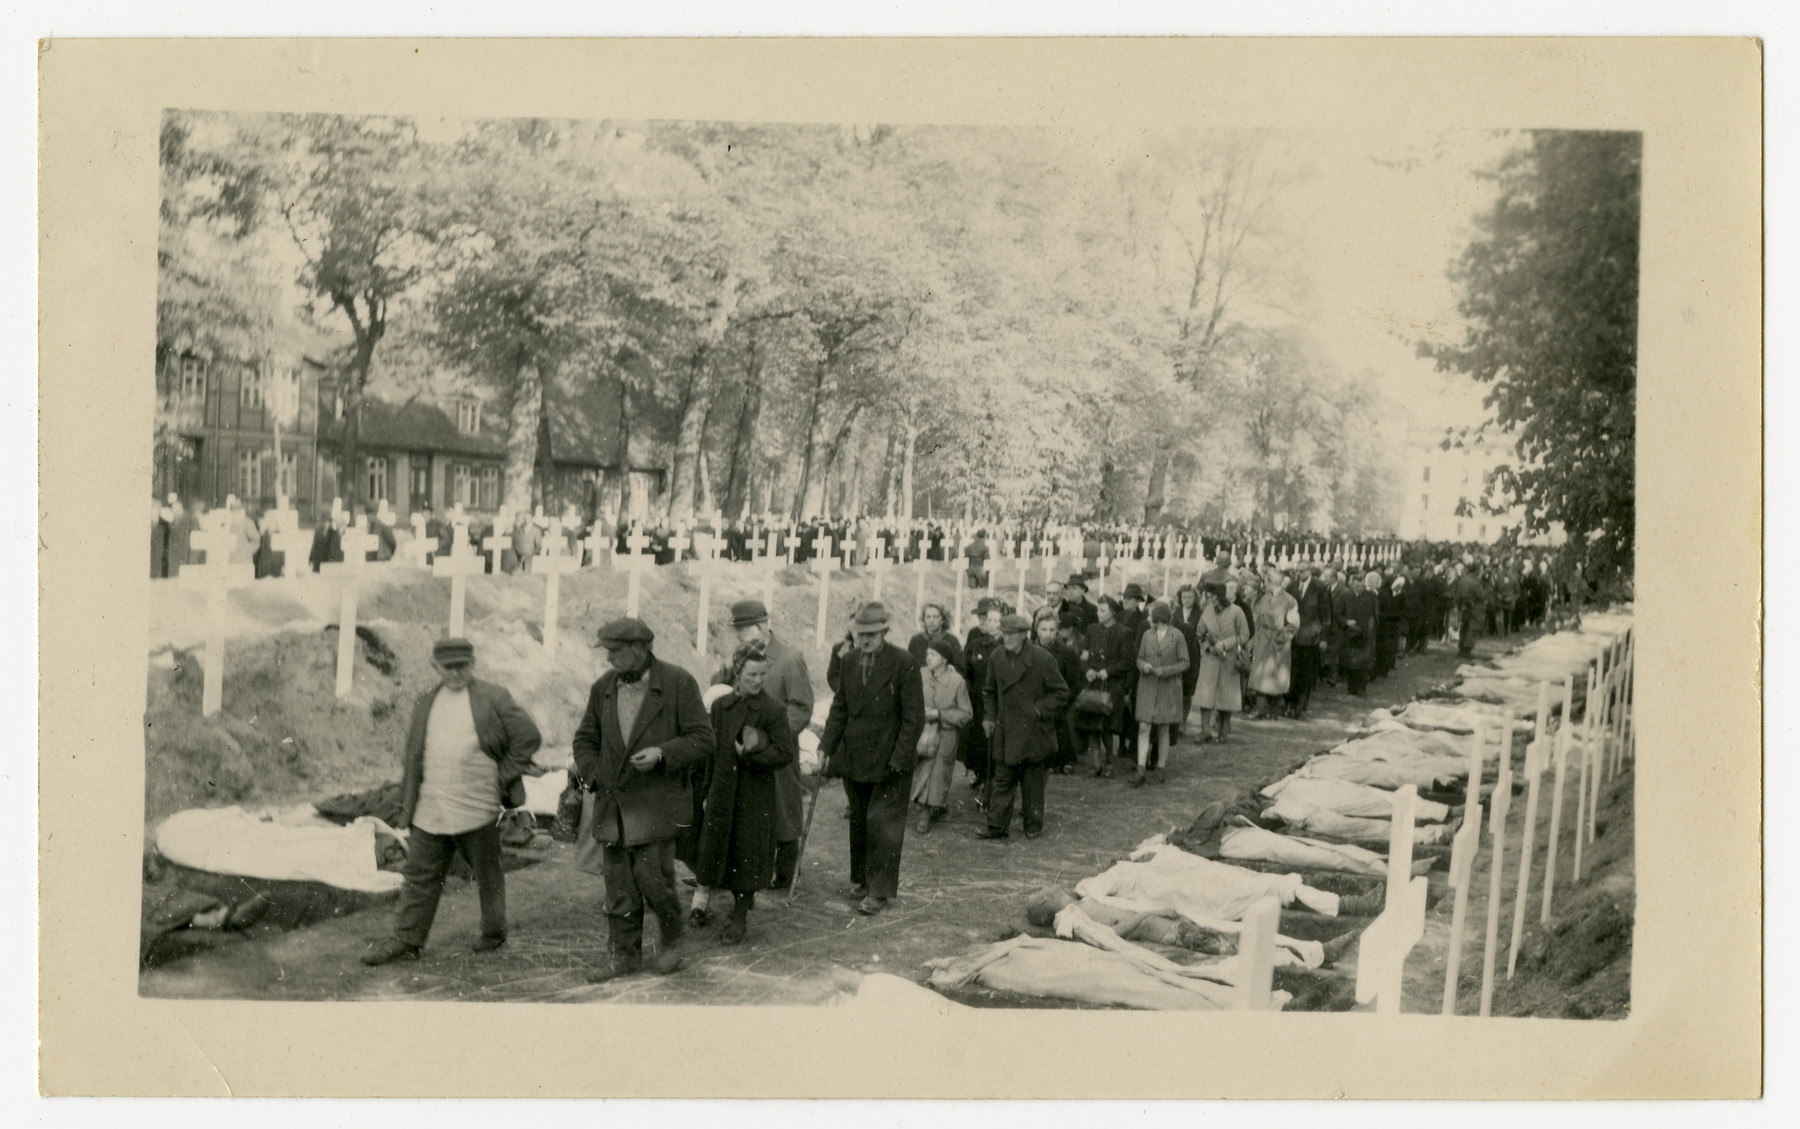 The population of Ludwigslust is forced to walk past the bodies of concentration camp victims prior to their reburial on the palace grounds of the Archduke of Mecklenburg.